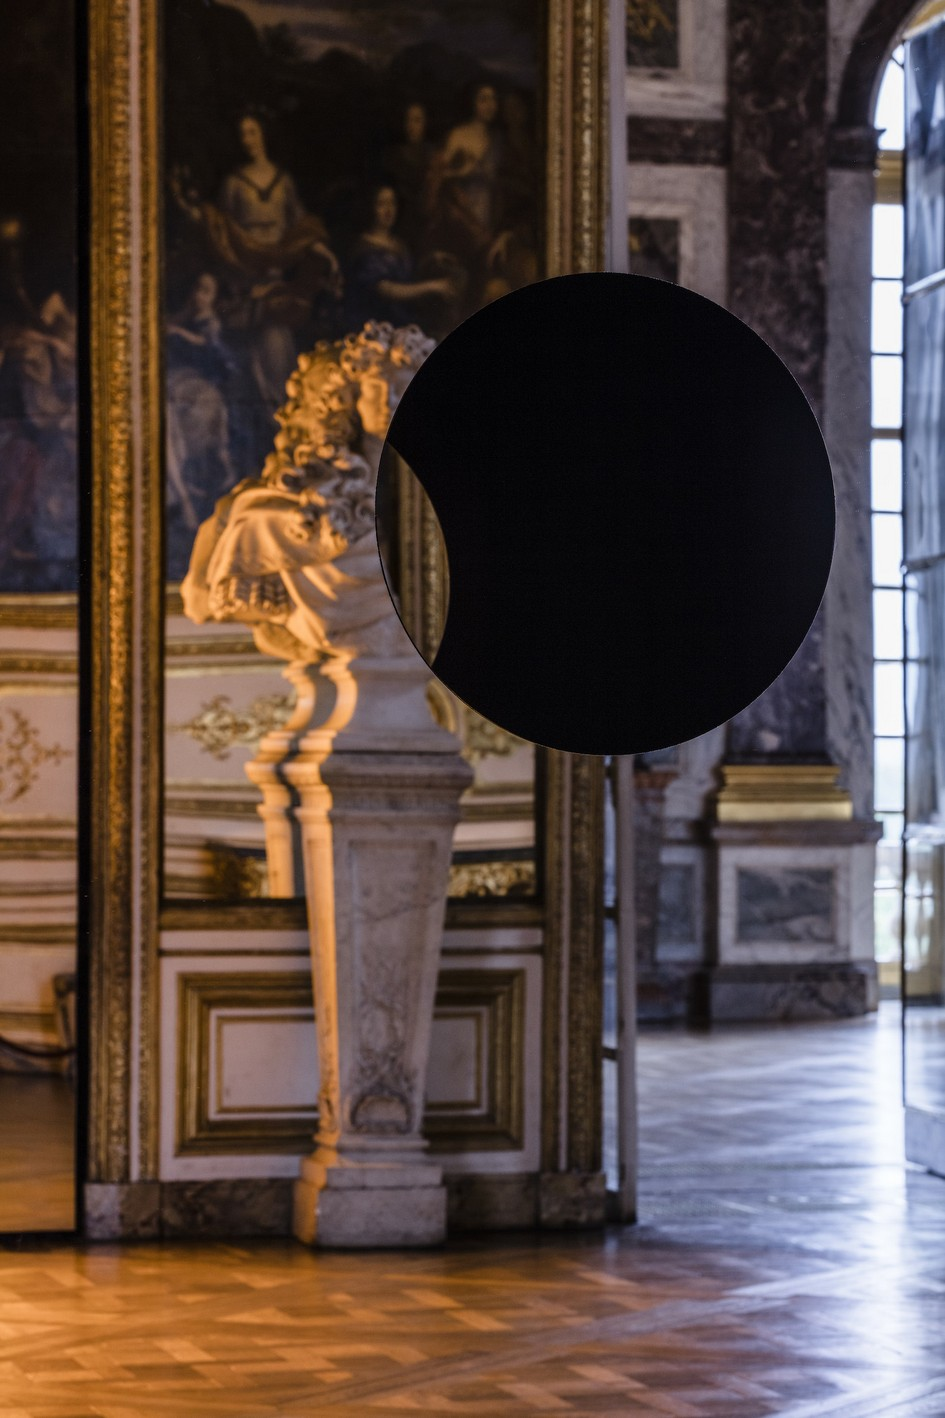 Guest Artist for Summer Olafur Eliasson Versailles Guest Artist Outstanding Versailles Guest Artist for Summer: Olafur Eliasson Outstanding Versailles Guest Artist for Summer Olafur Eliasson 5